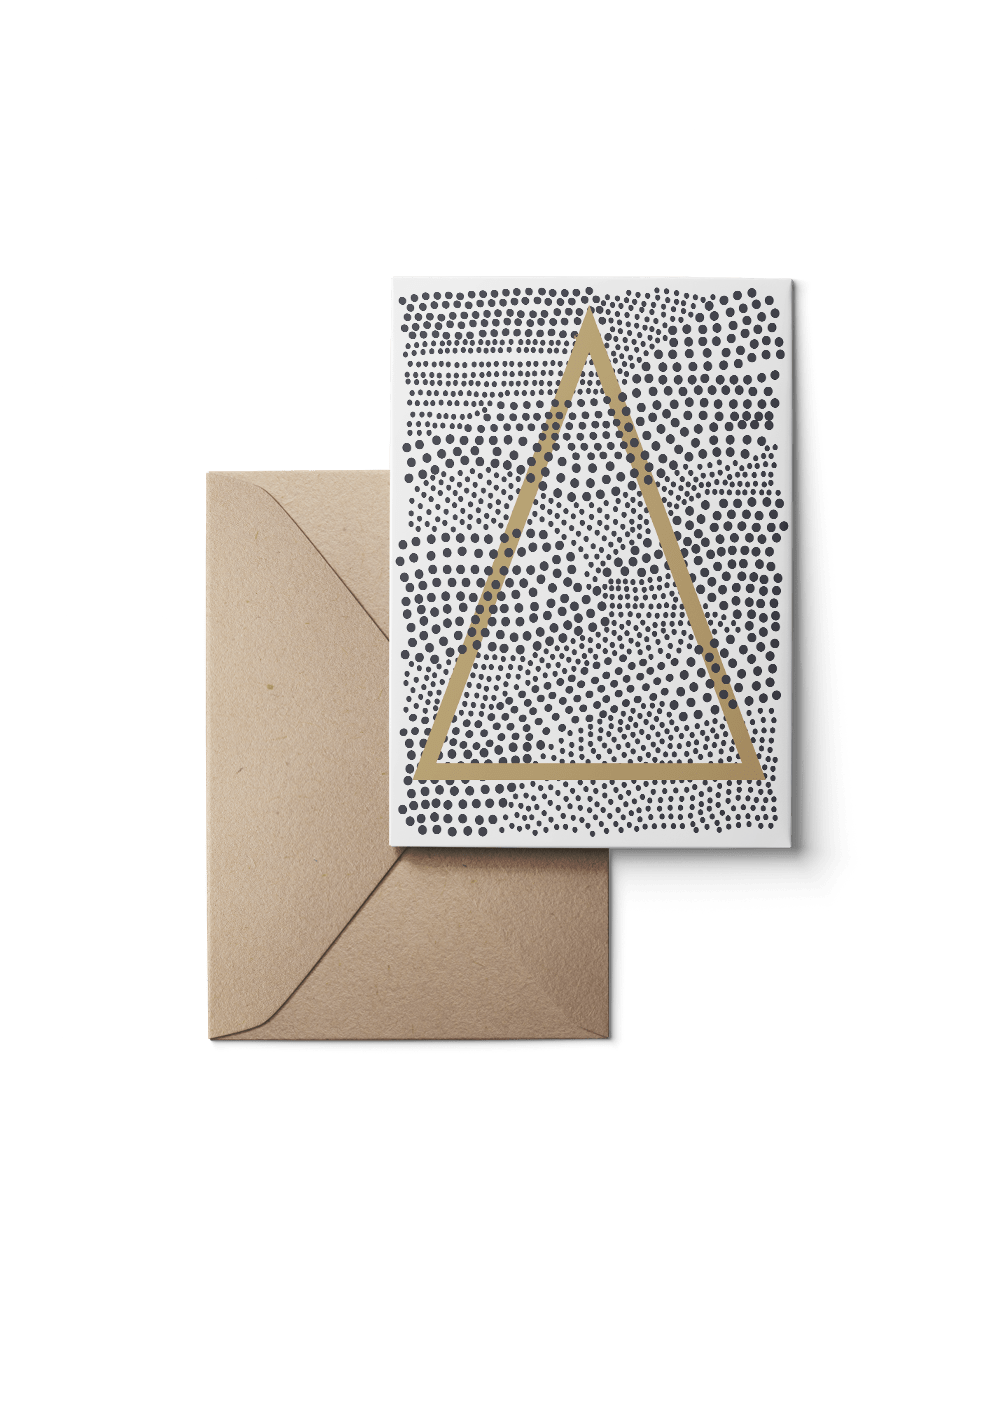 Fields, Beige, Eco, 6 Karten Set by Karten Design Fabrik. Supplier of designer Greeting Cards, Gift Wrap, Christmas Cards & Invitations to leading design stores including Connox, Modulor, Magazin & Manufactum.